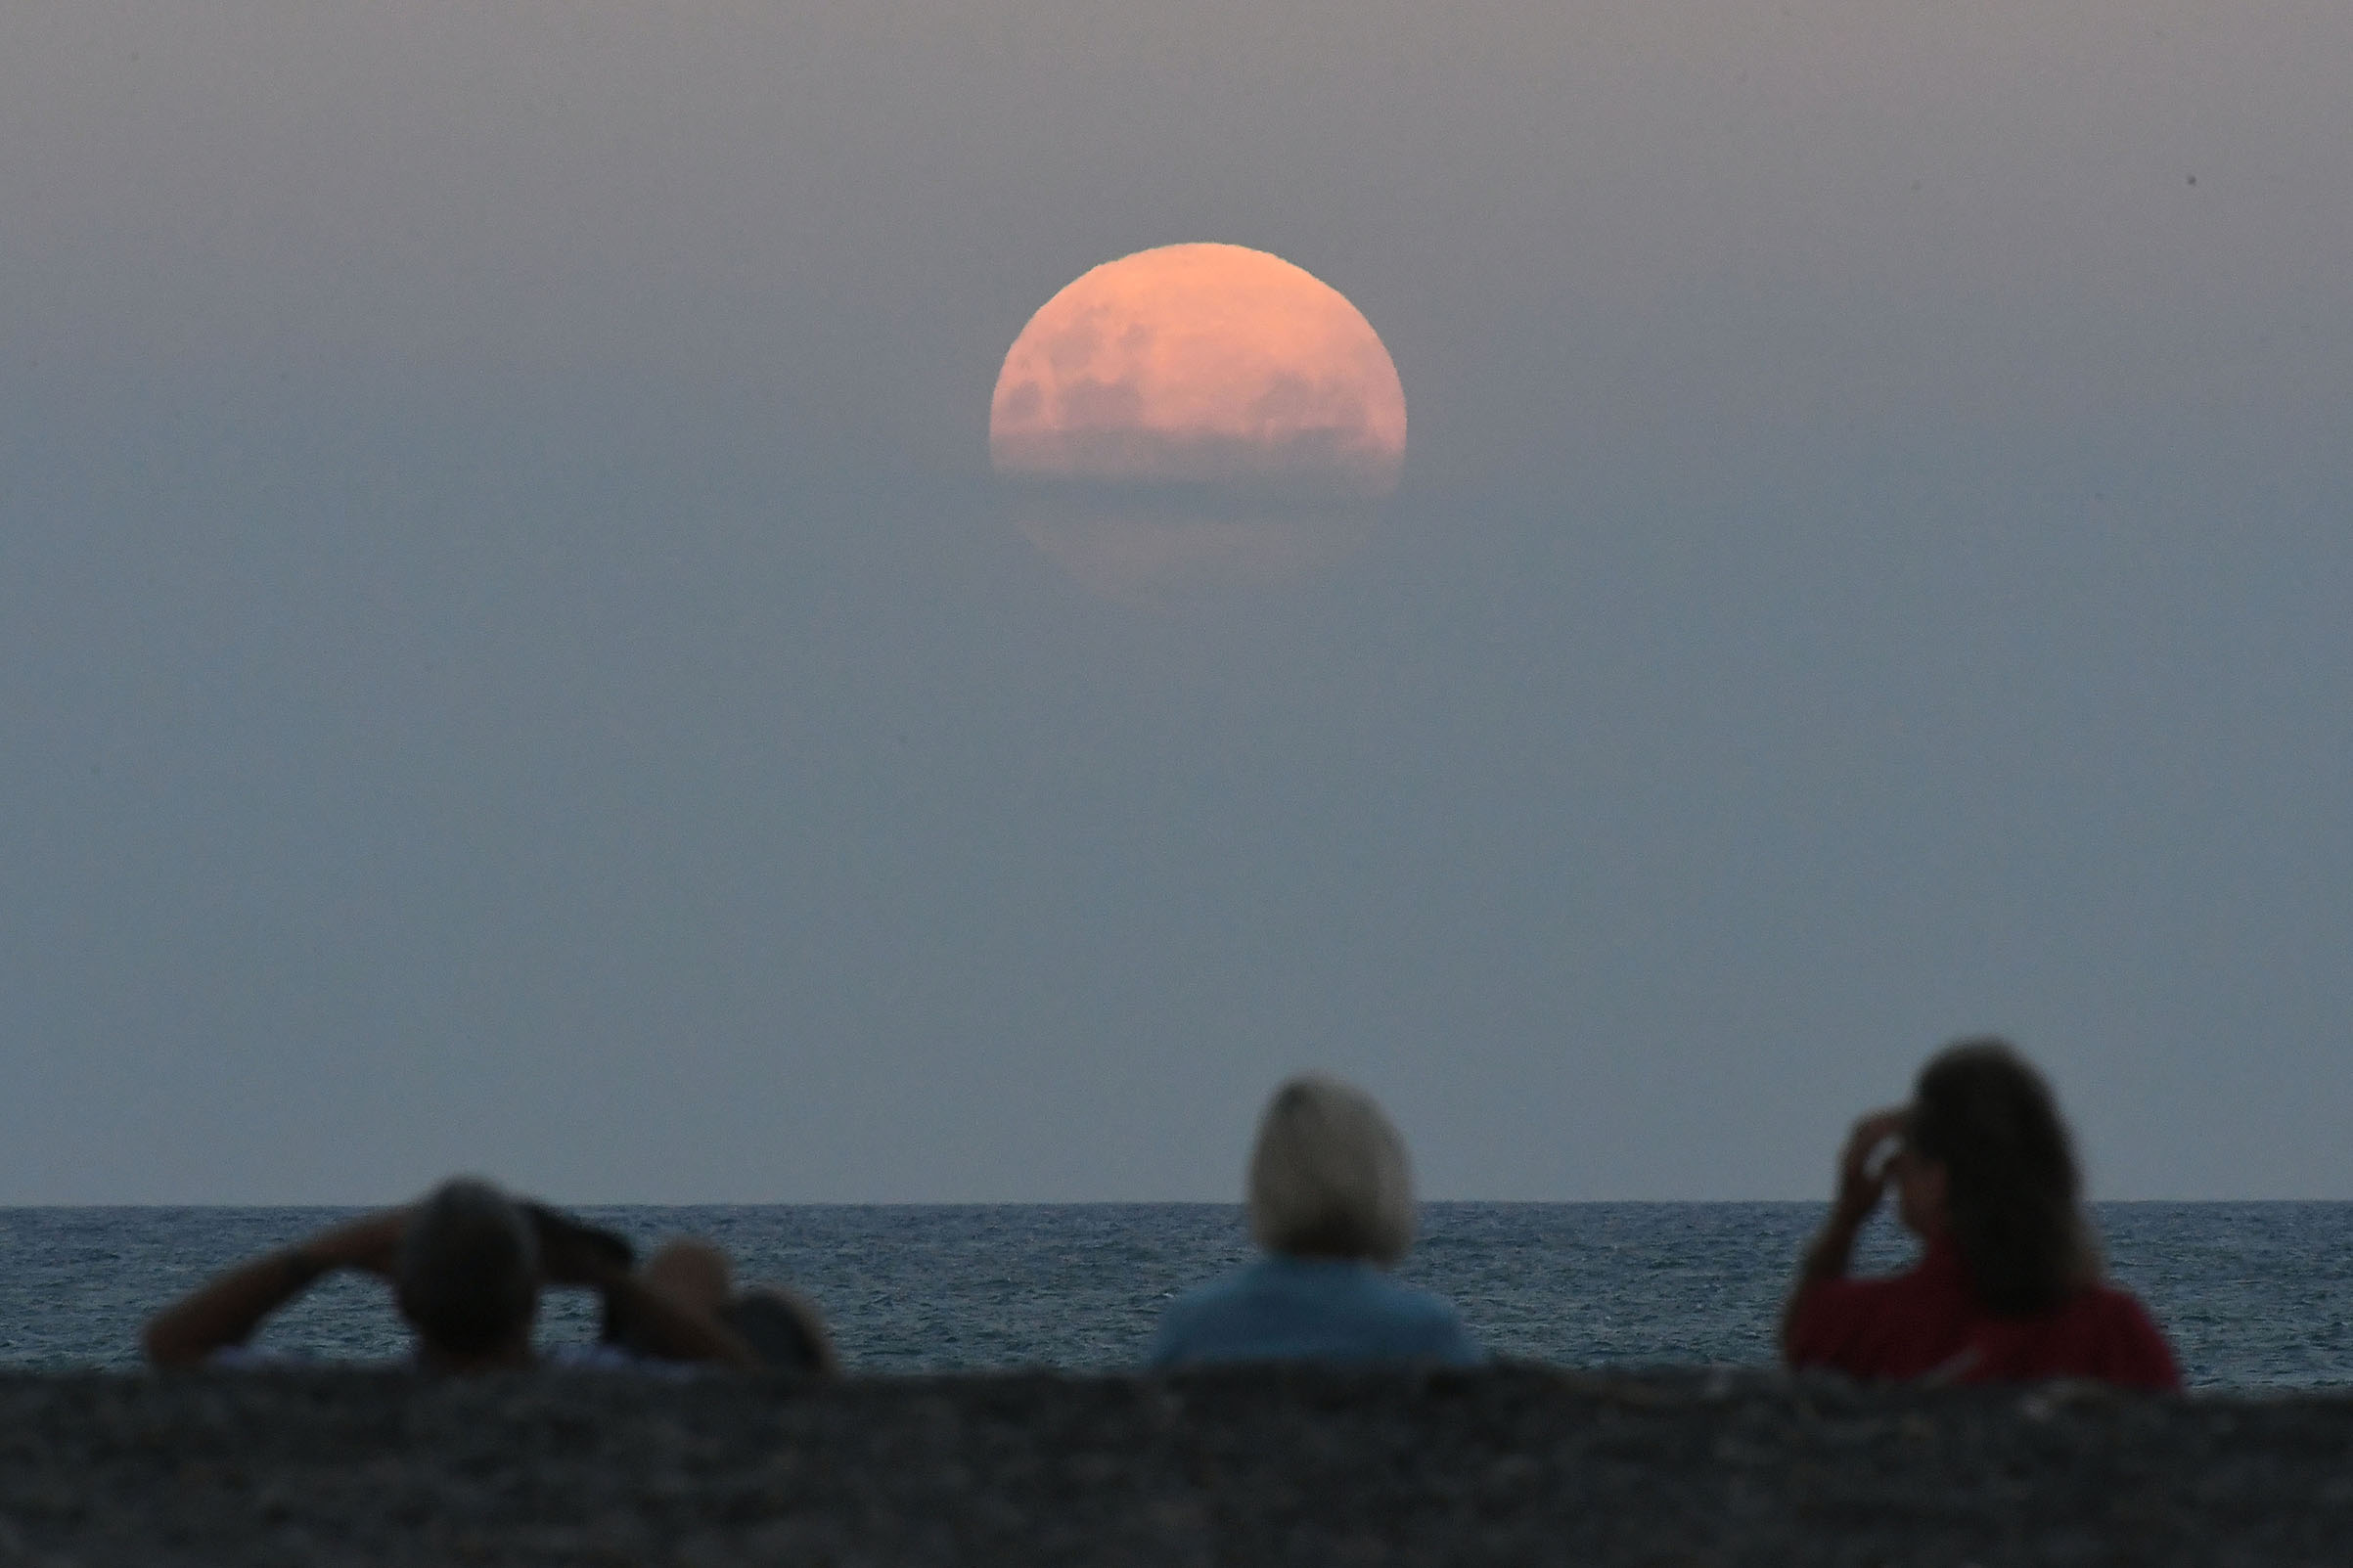 Crowds gather on the Marine Parade Beach to watch the Super Blue Blood Moon rise in Napier, New Zealand on Jan. 31, 2018.